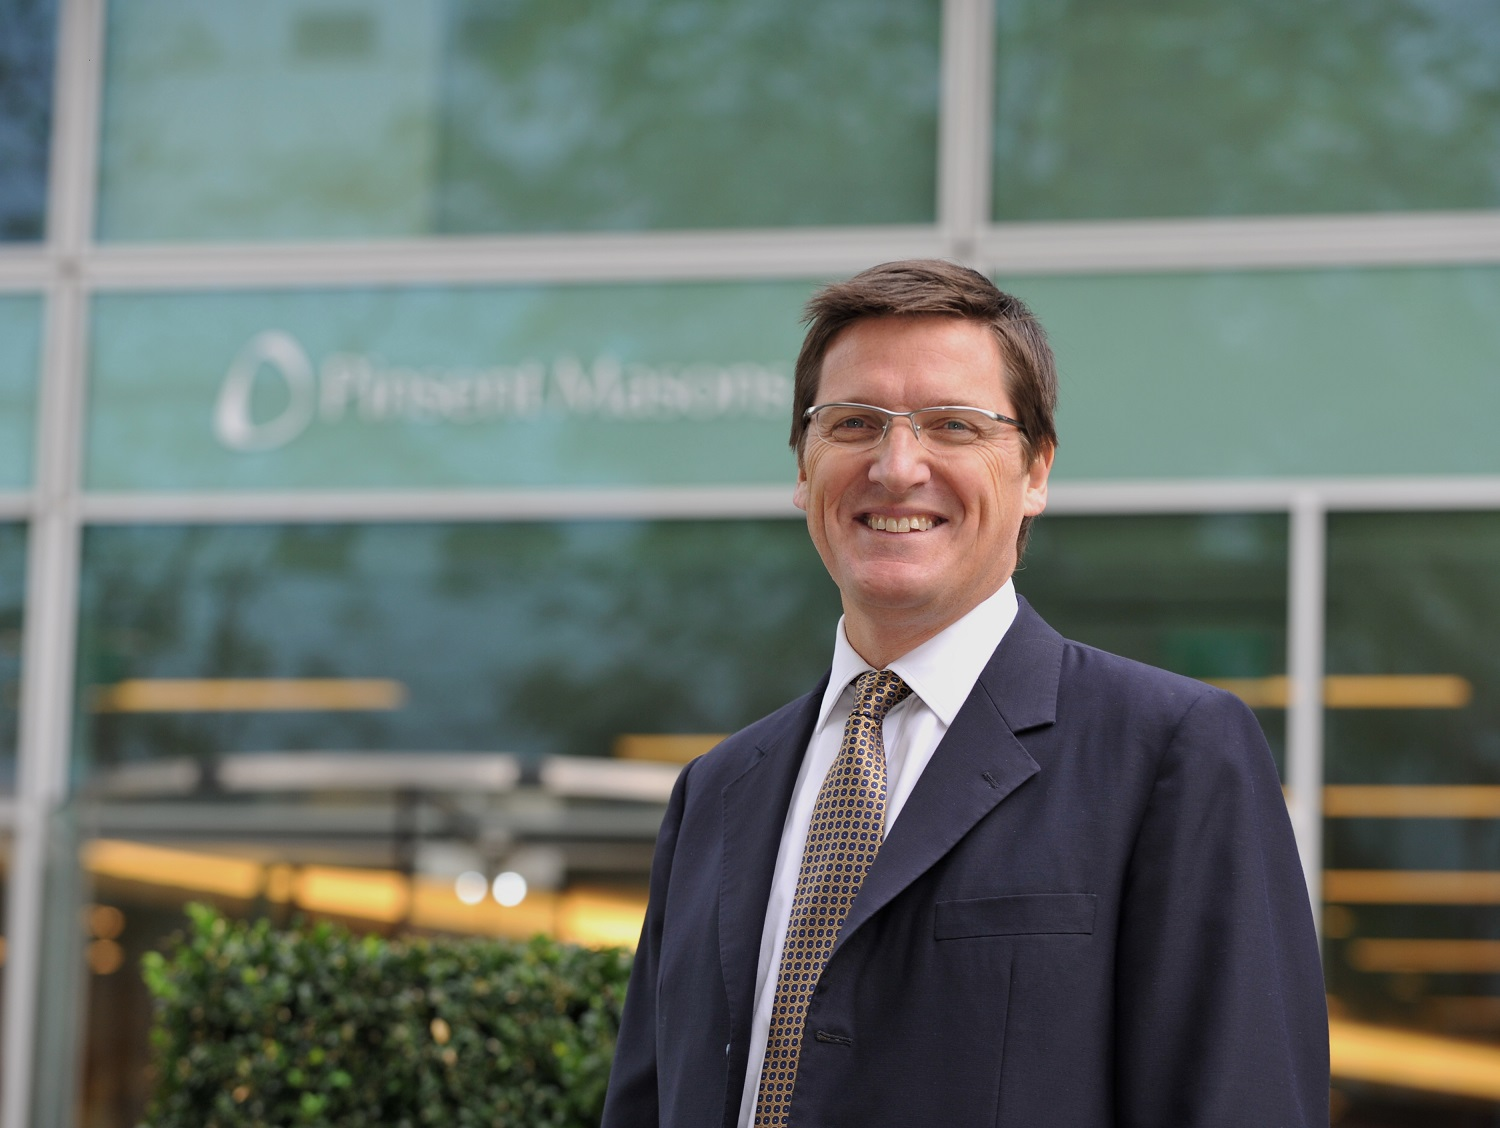 richard-foley-senior-partner-pinsent-masons-llp